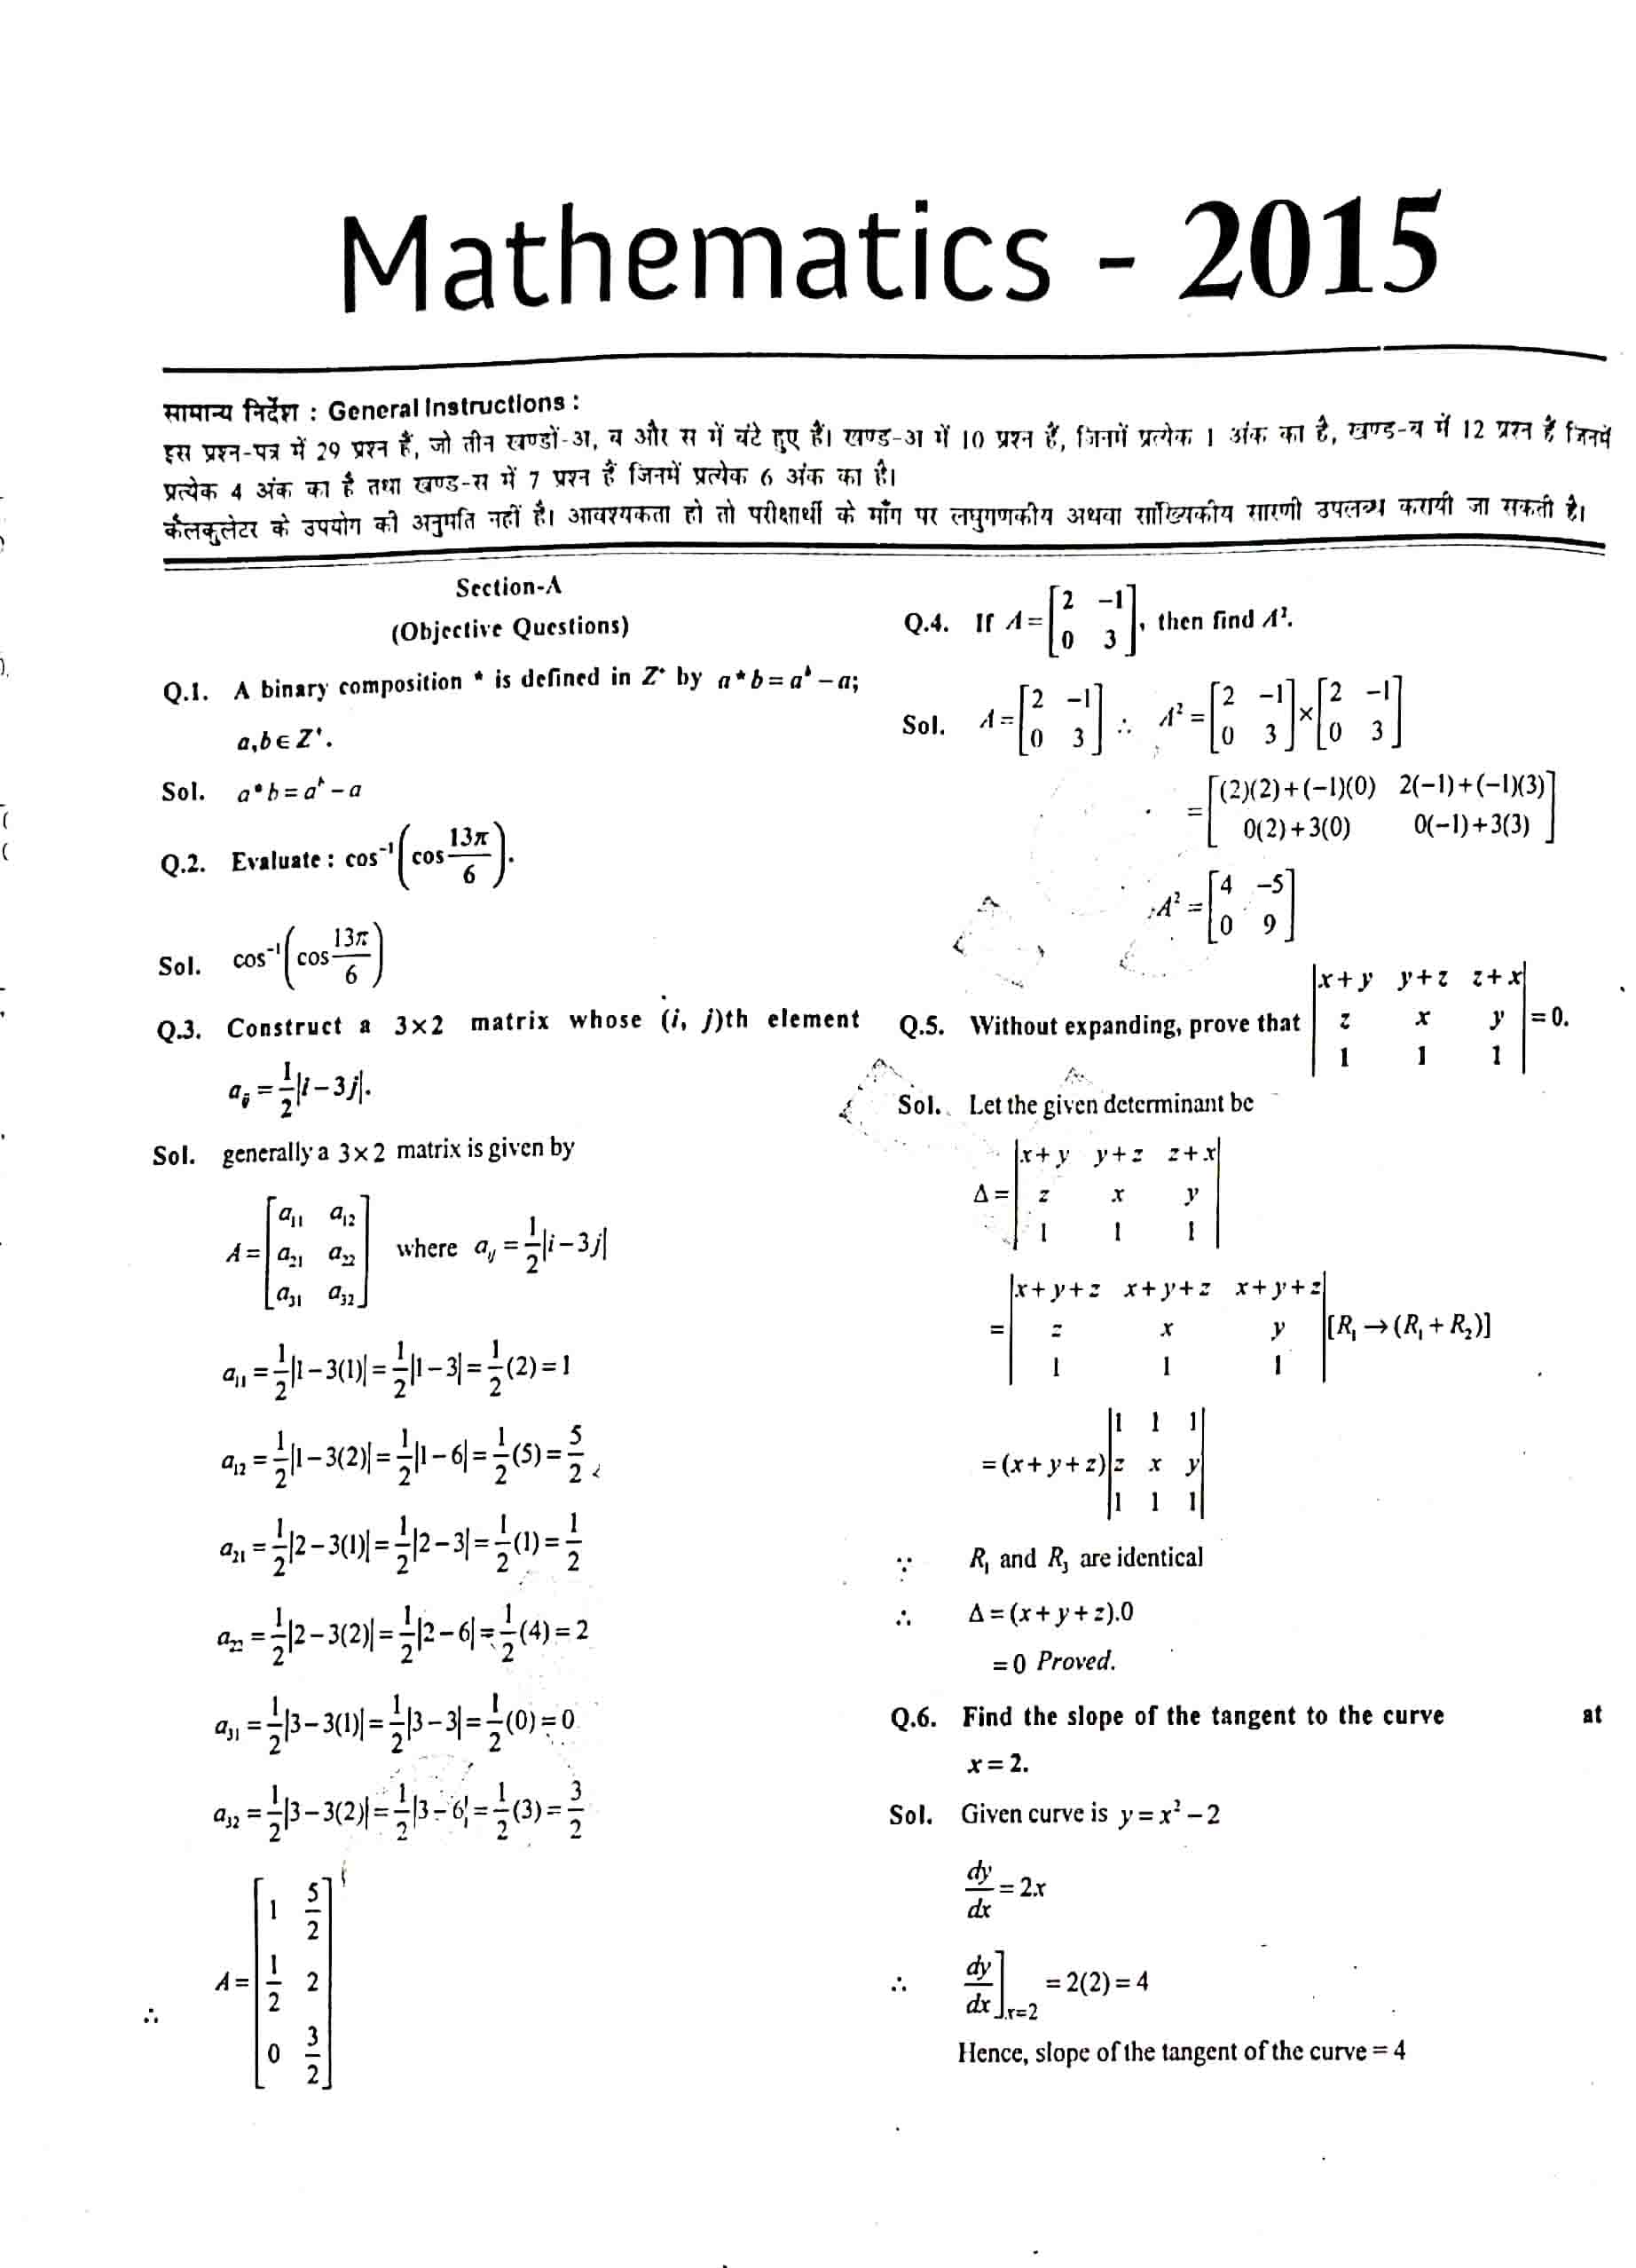 JAC Class 12 math 2015 Question Paper 01